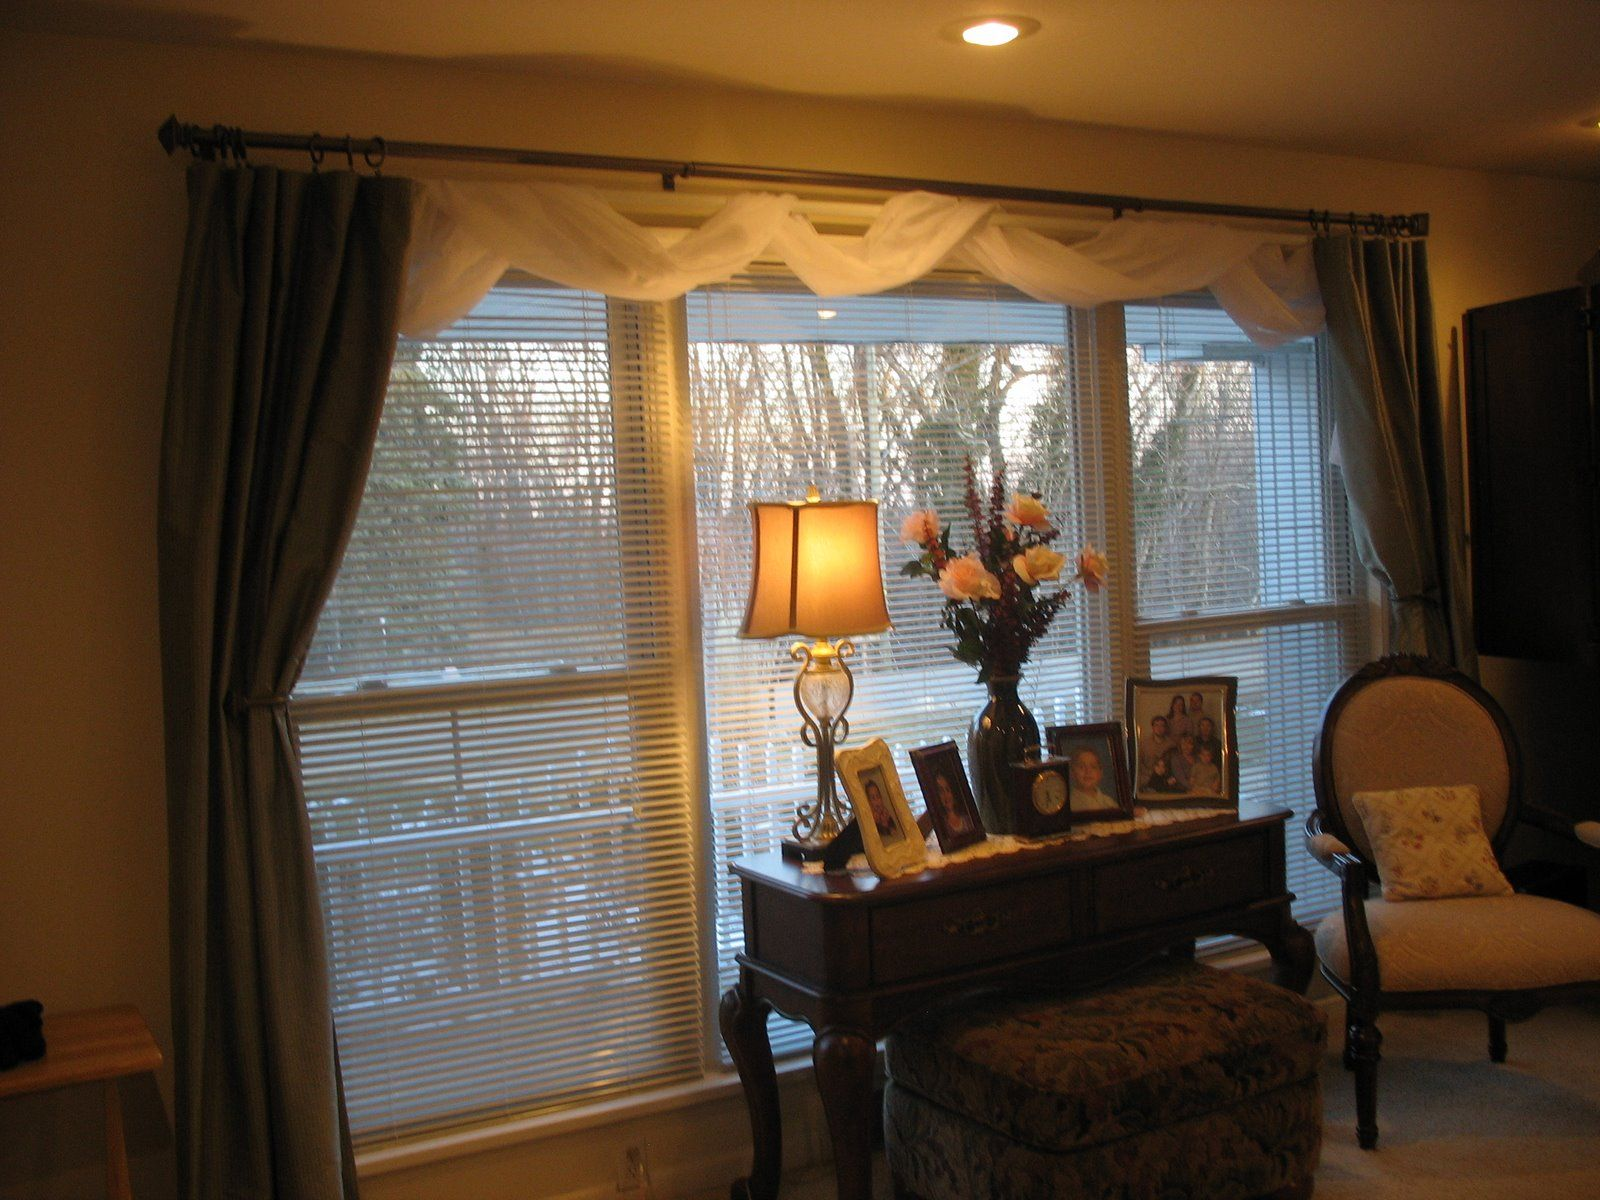 Curtain Idea For Living Room Window Treatments Living Room